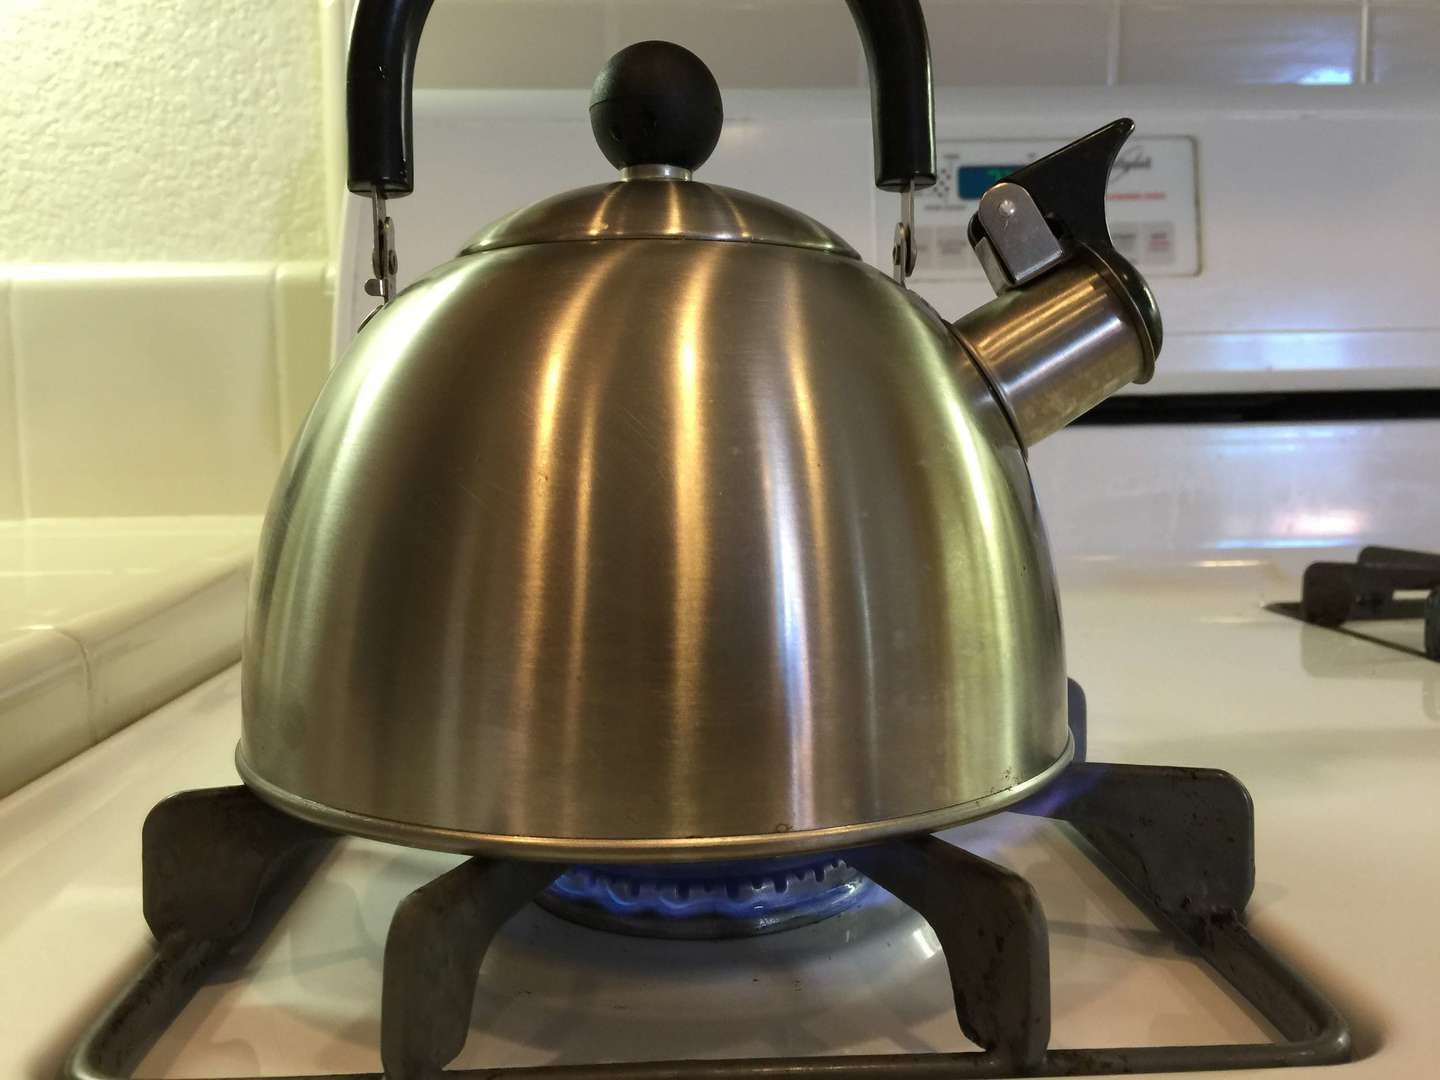 kettle on the stove